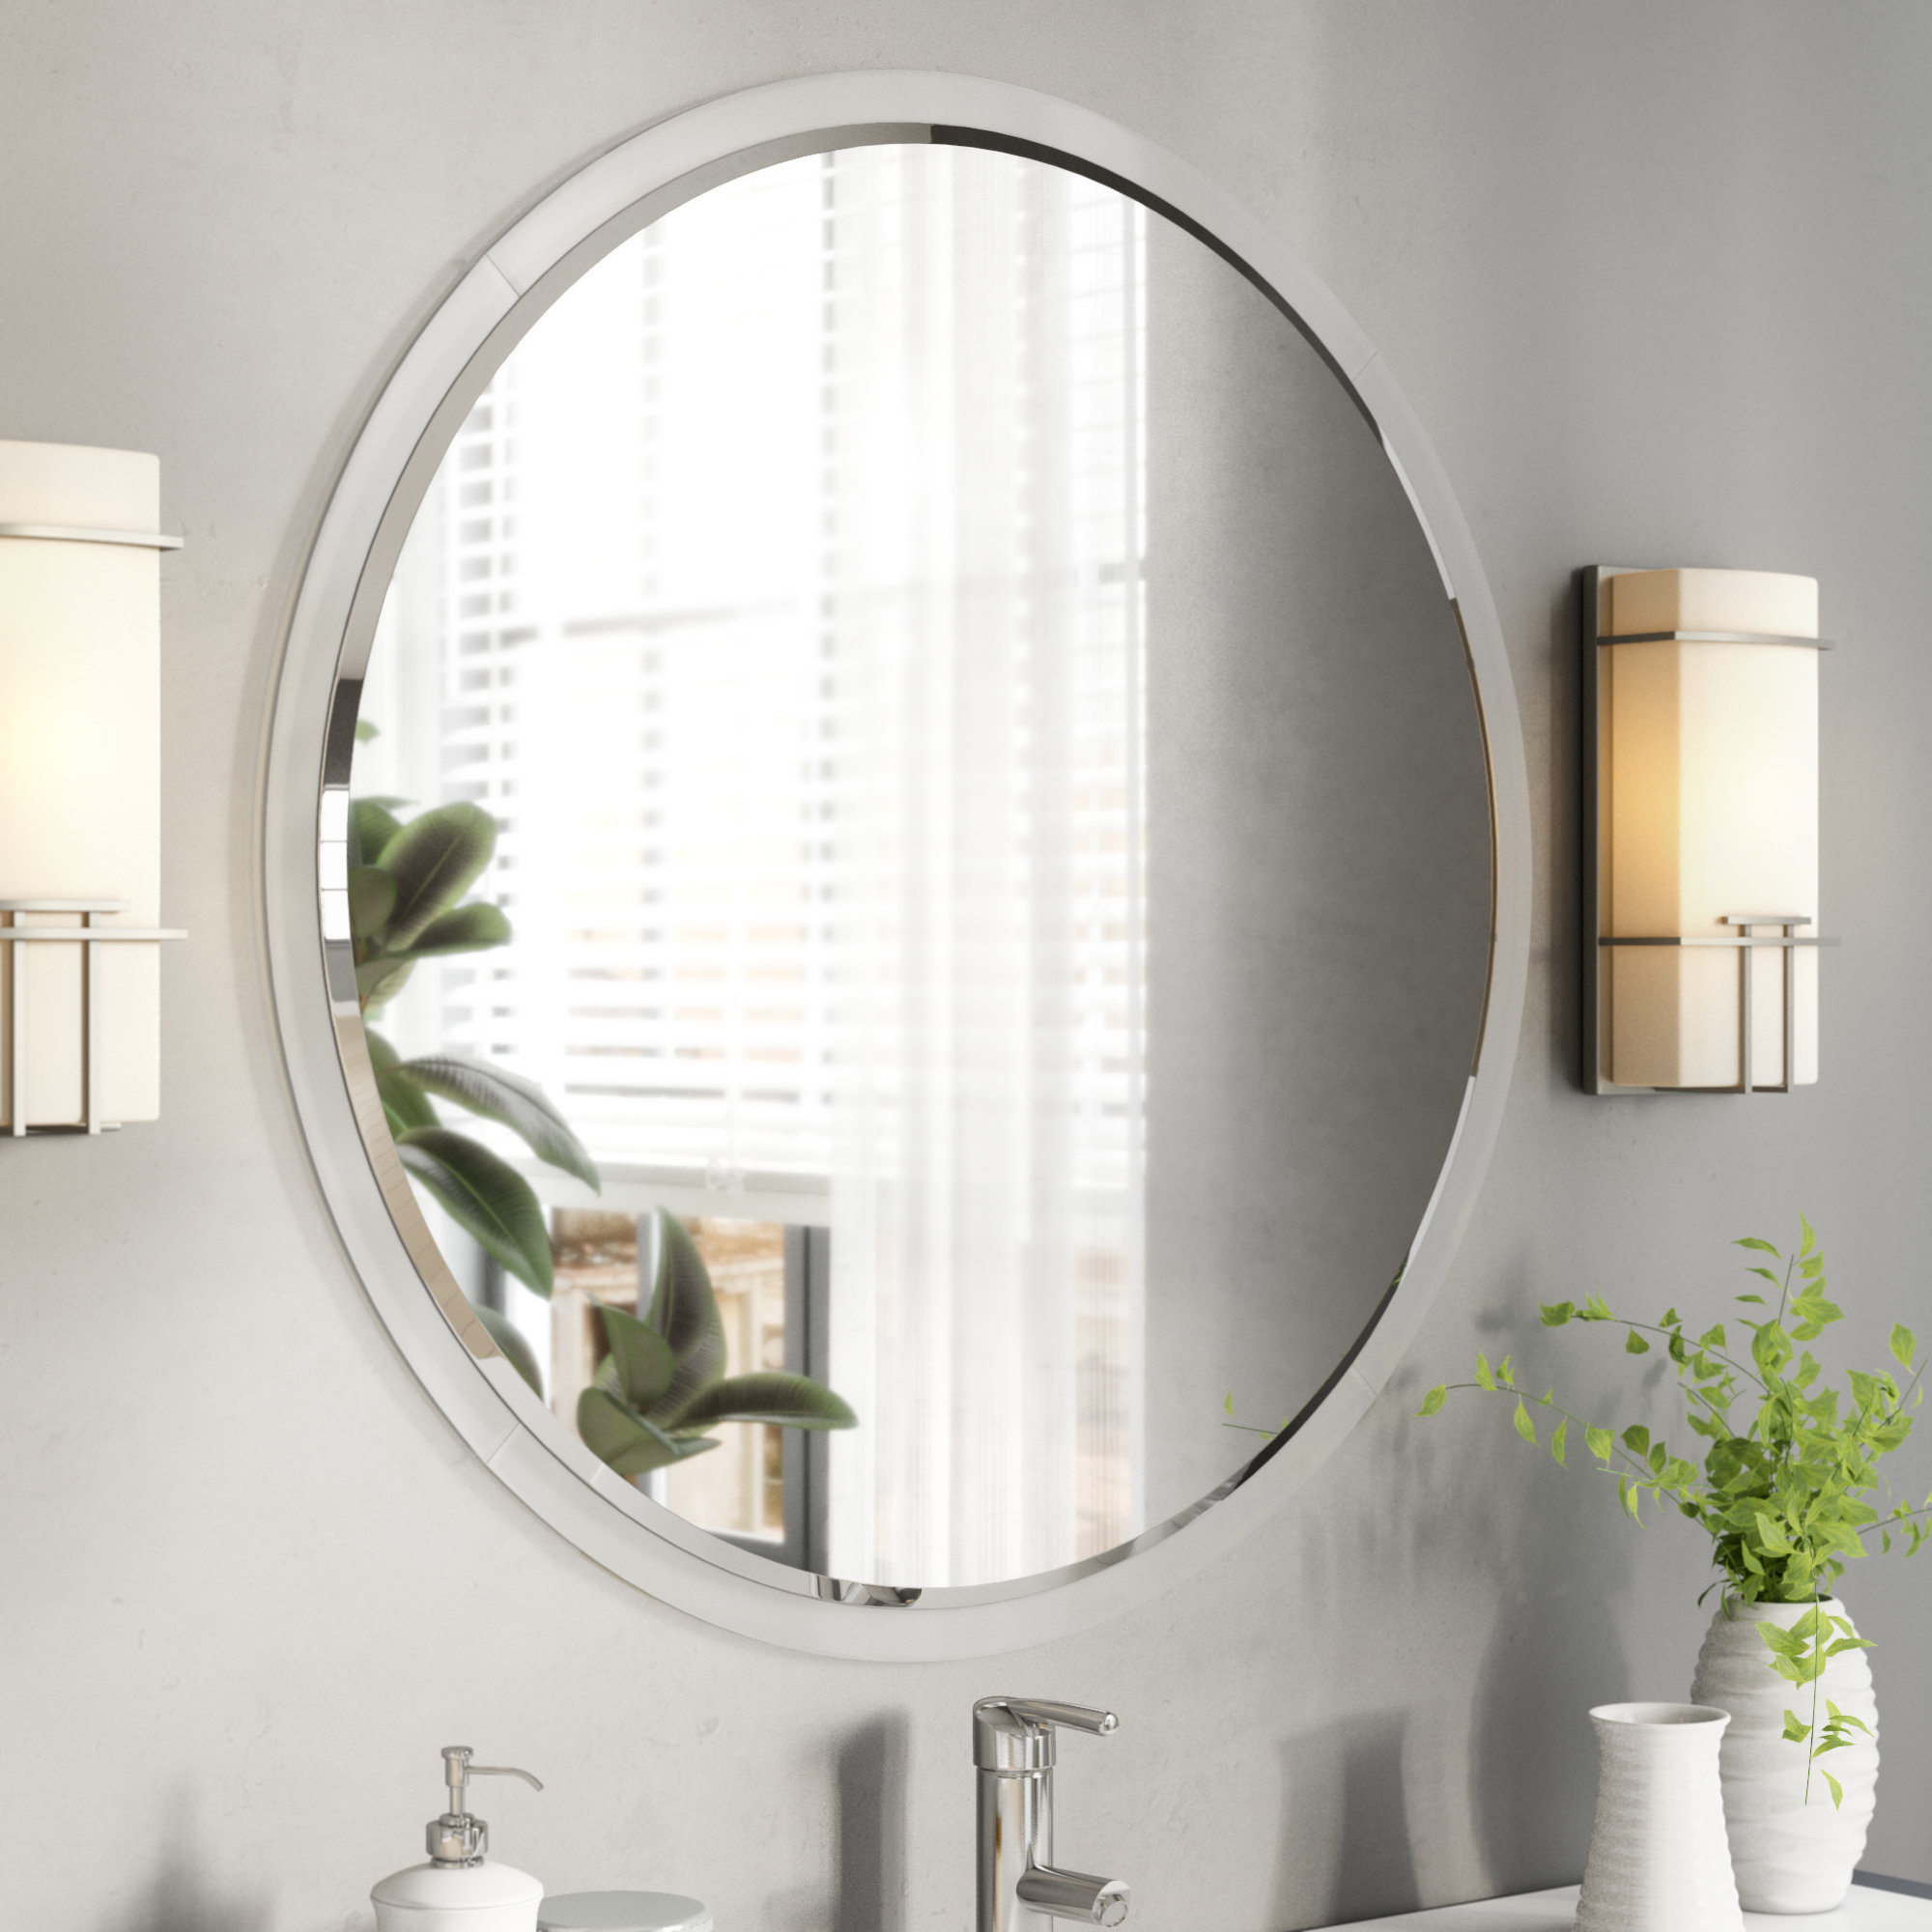 Fashionable Enciso Wall Bathroom/vanity Mirror Throughout Lidya Frameless Beveled Wall Mirrors (View 19 of 20)